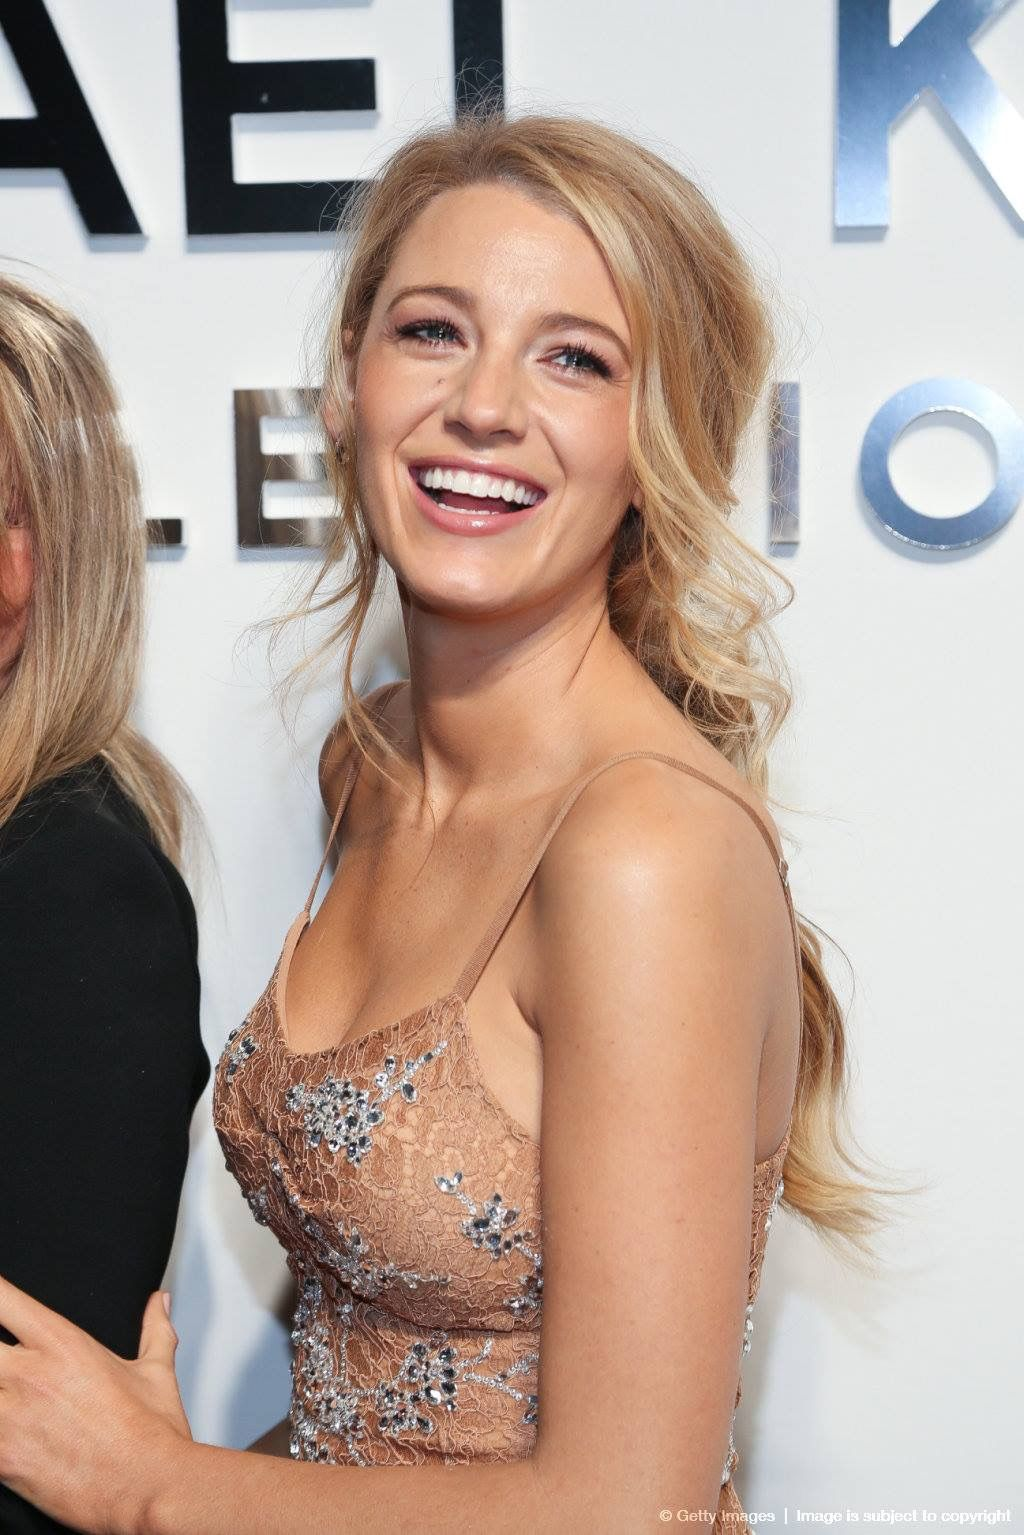 Celebrity Blake Lively nudes (96 photo), Ass, Bikini, Twitter, panties 2006